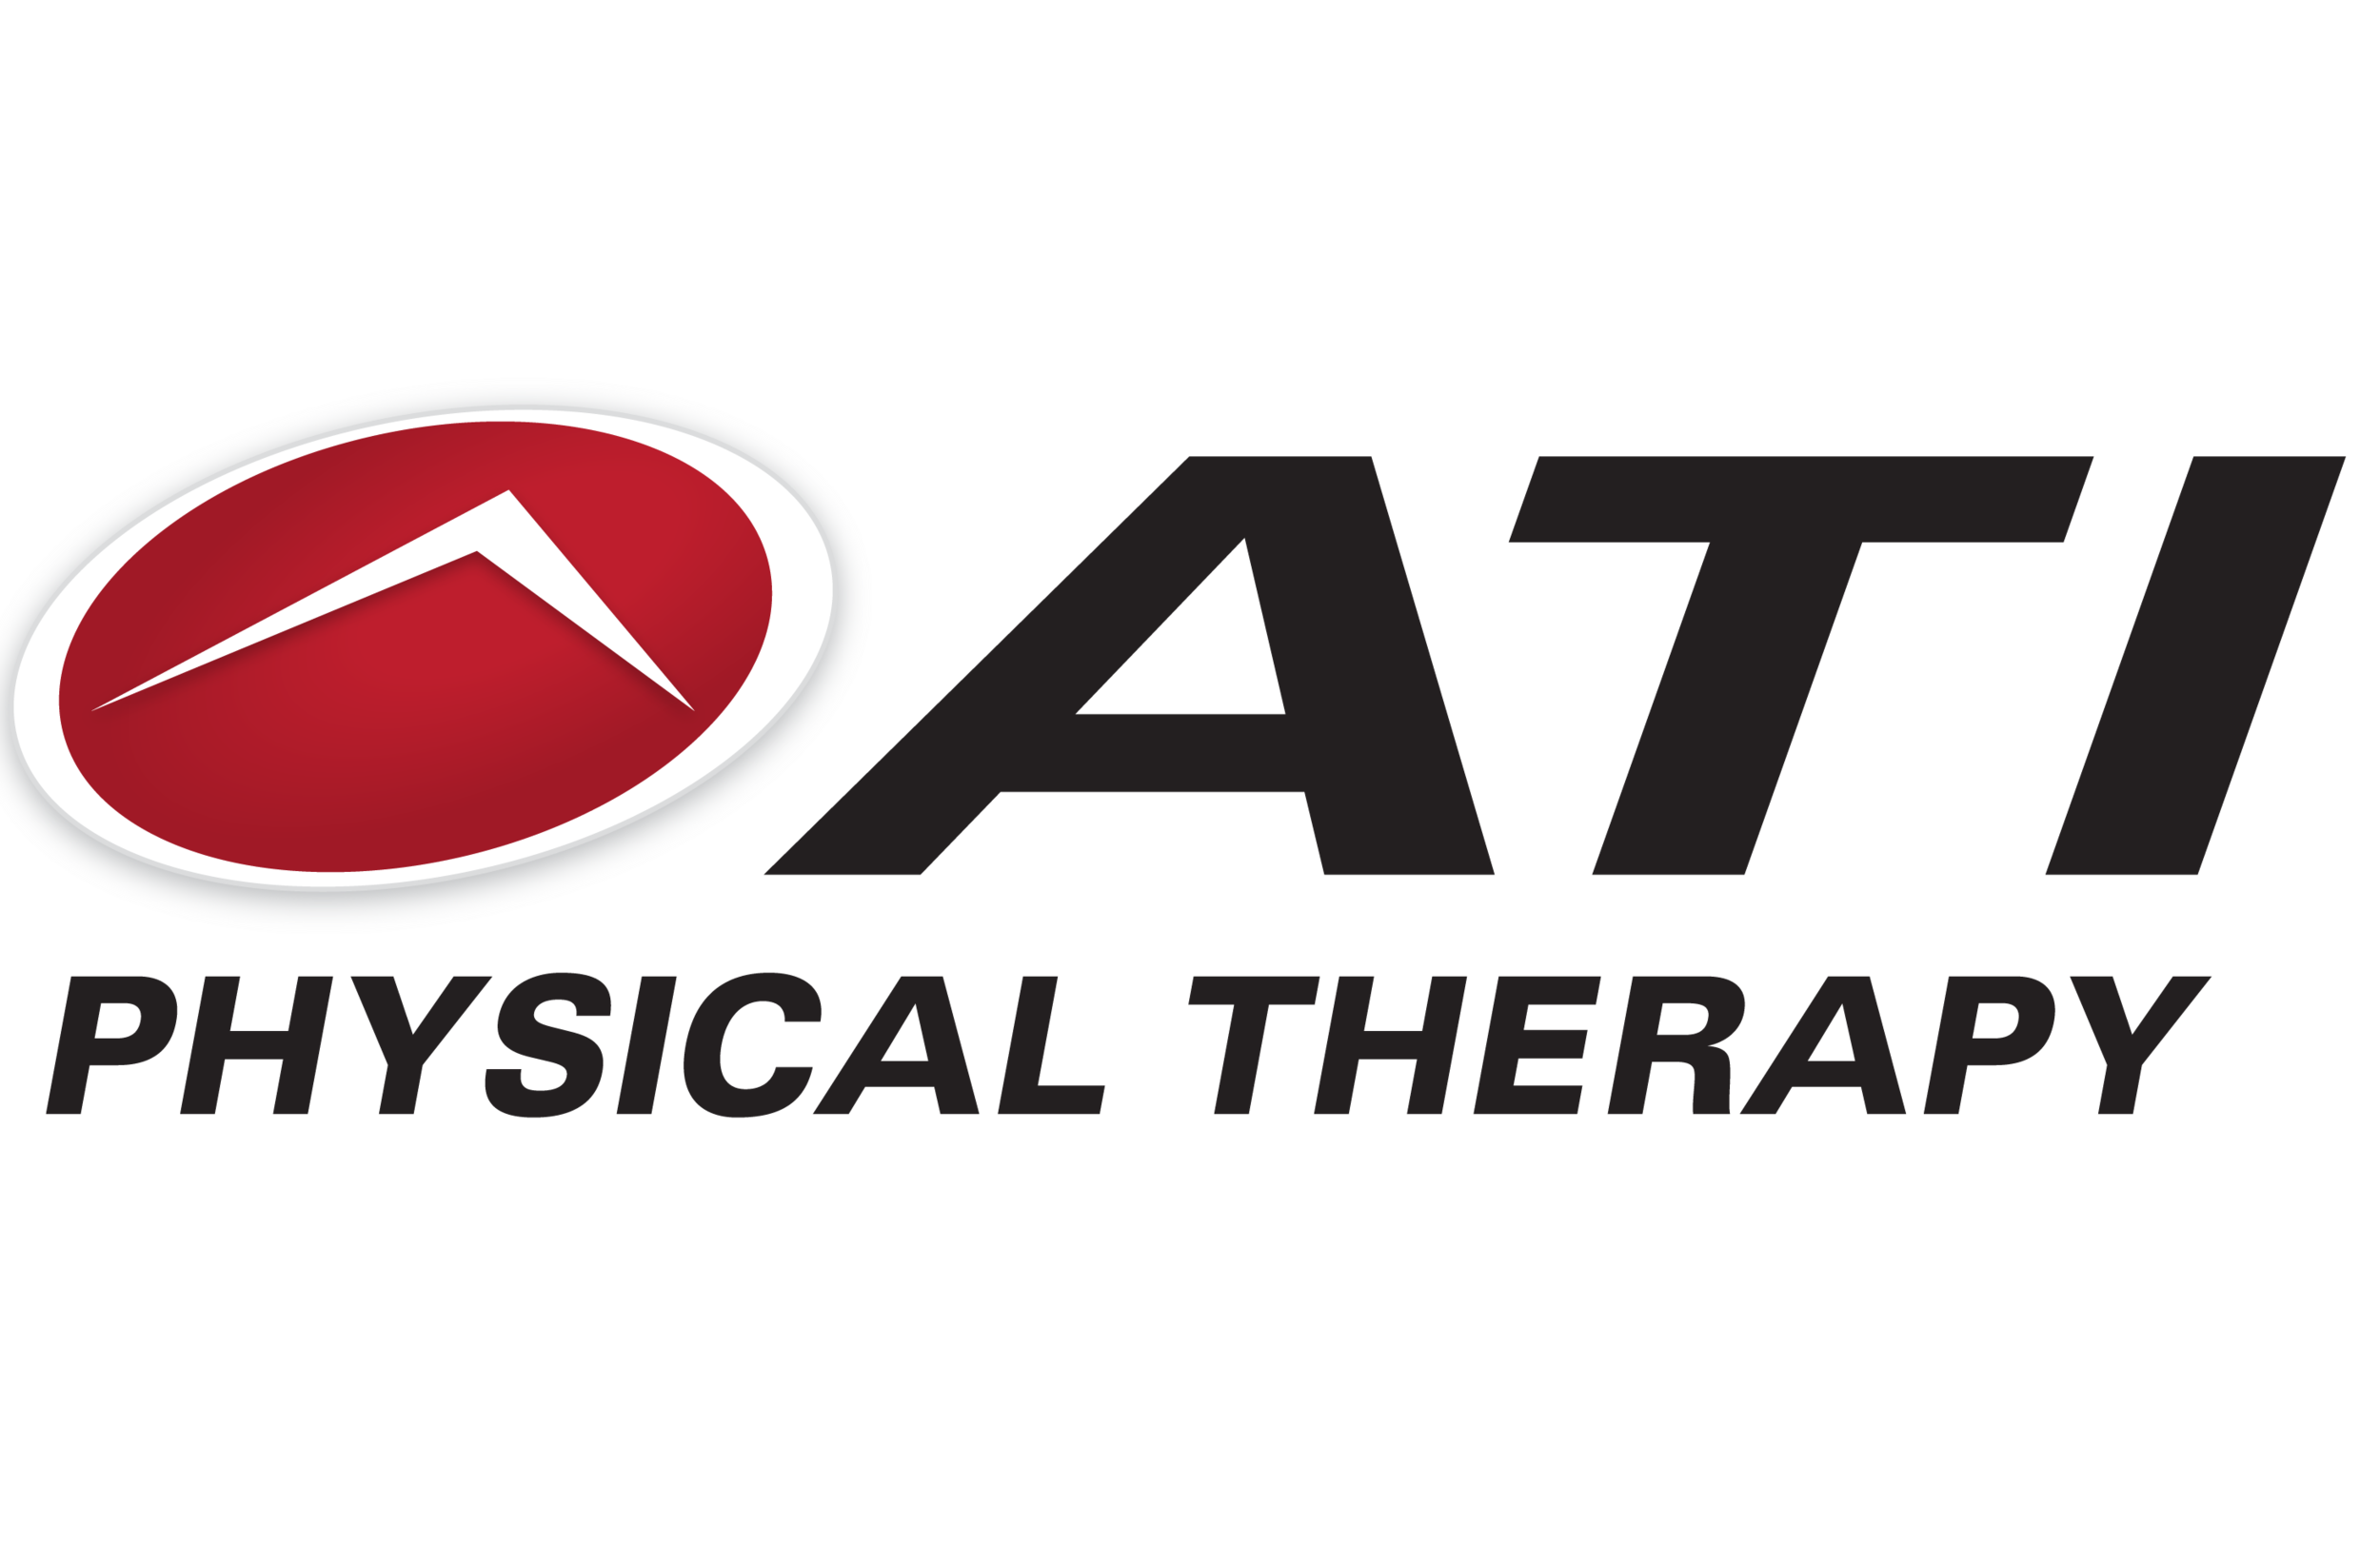 ATI Physical Therapy Launches ATI TV For Patient Engagement - New 'Social TV' Platform powered by UPshow